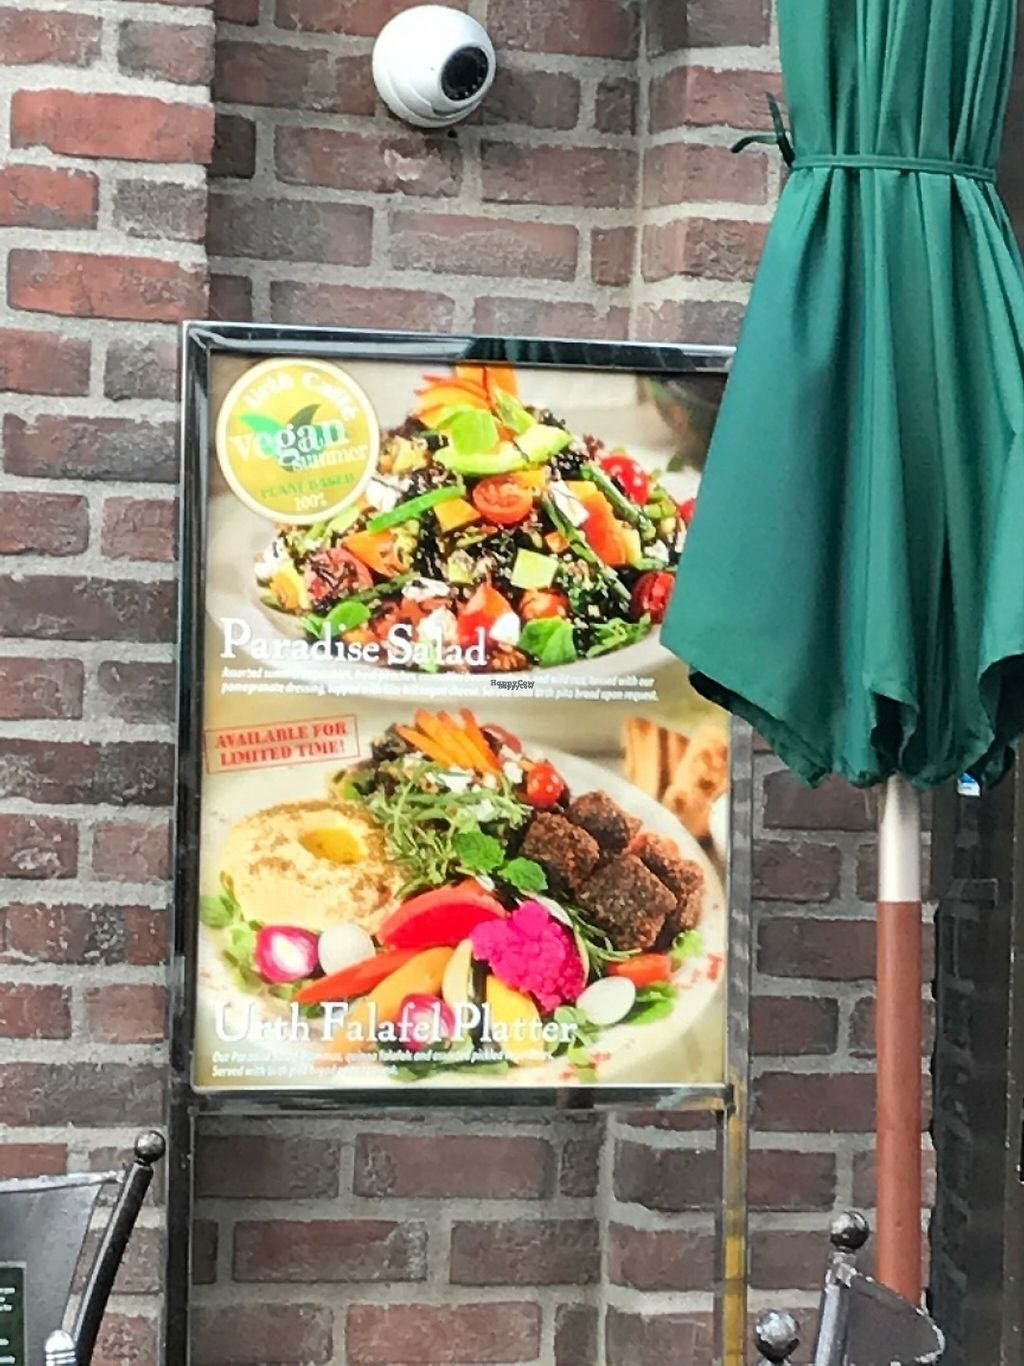 """Photo of Urth Caffe  by <a href=""""/members/profile/rackoo"""">rackoo</a> <br/>They're dabbling with vegan food options.  Ask because these are promos off their regular menu <br/> January 16, 2017  - <a href='/contact/abuse/image/16851/212499'>Report</a>"""